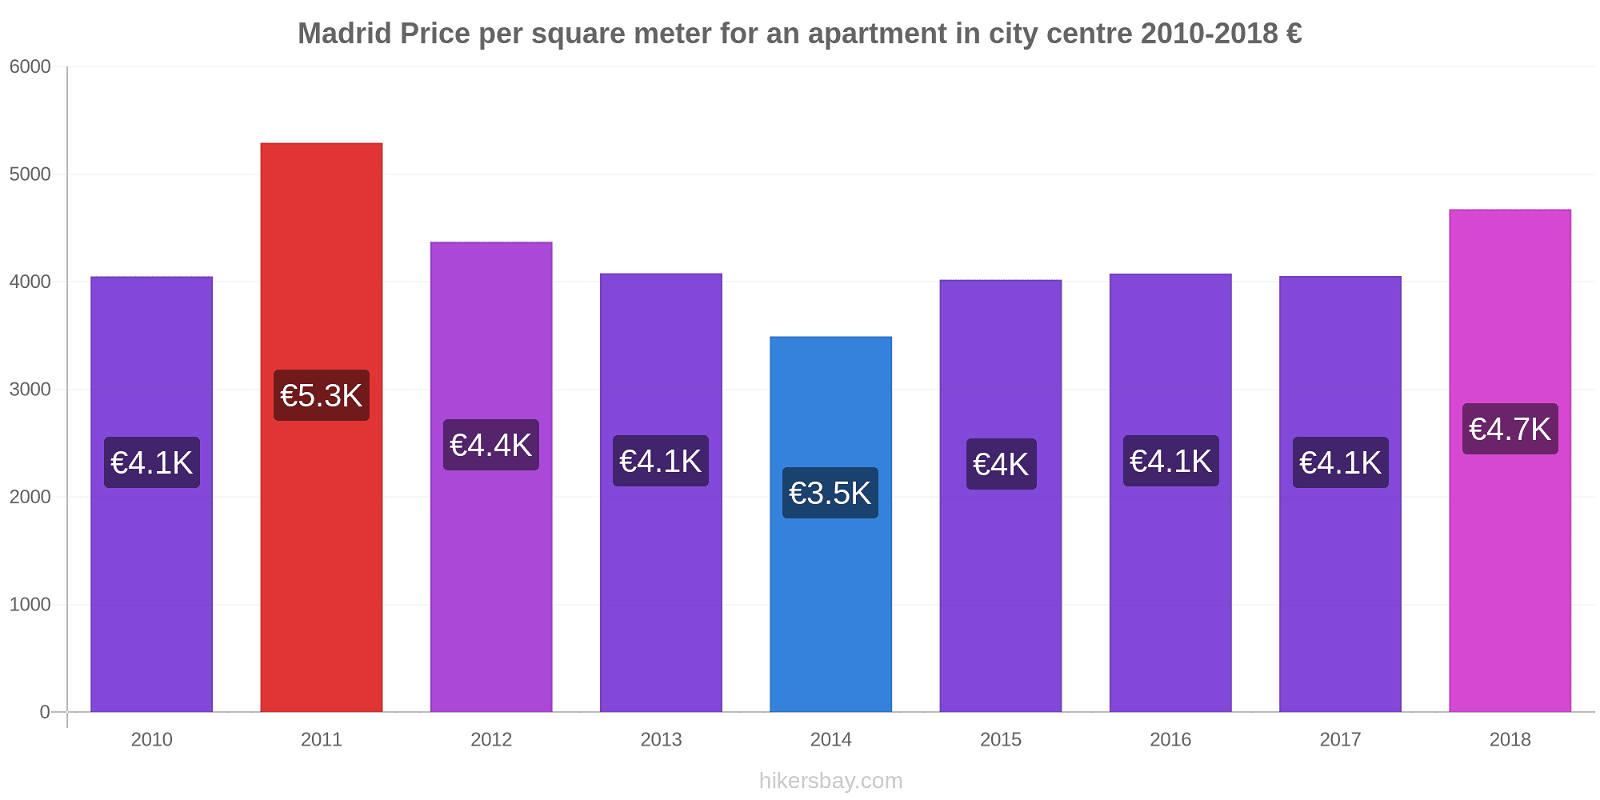 Madrid price changes Price per square meter for an apartment in city centre hikersbay.com